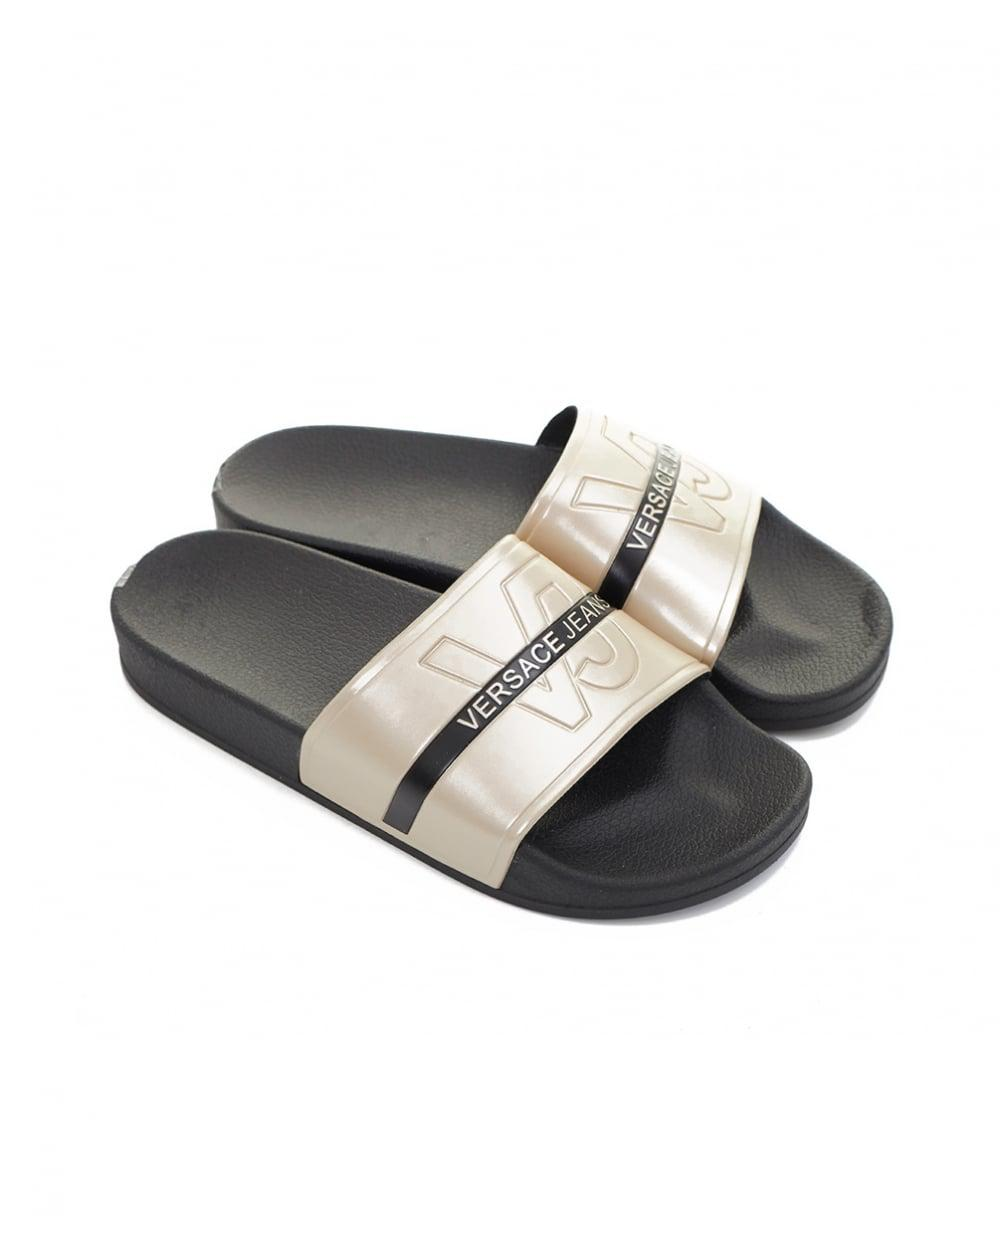 a07230e3daa7 Versace Jeans Sliders in Black for Men - Lyst